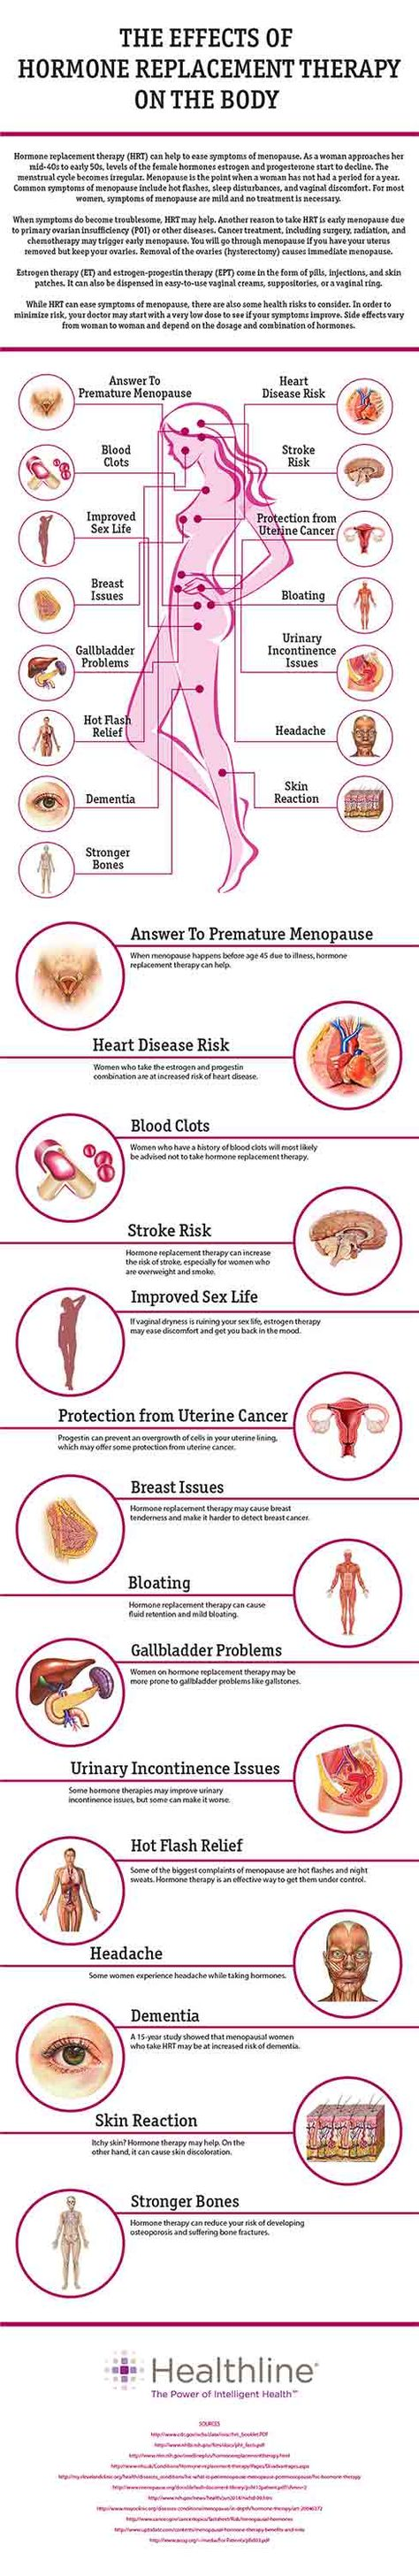 Effects of Hormone Replacement Therapy on the Body